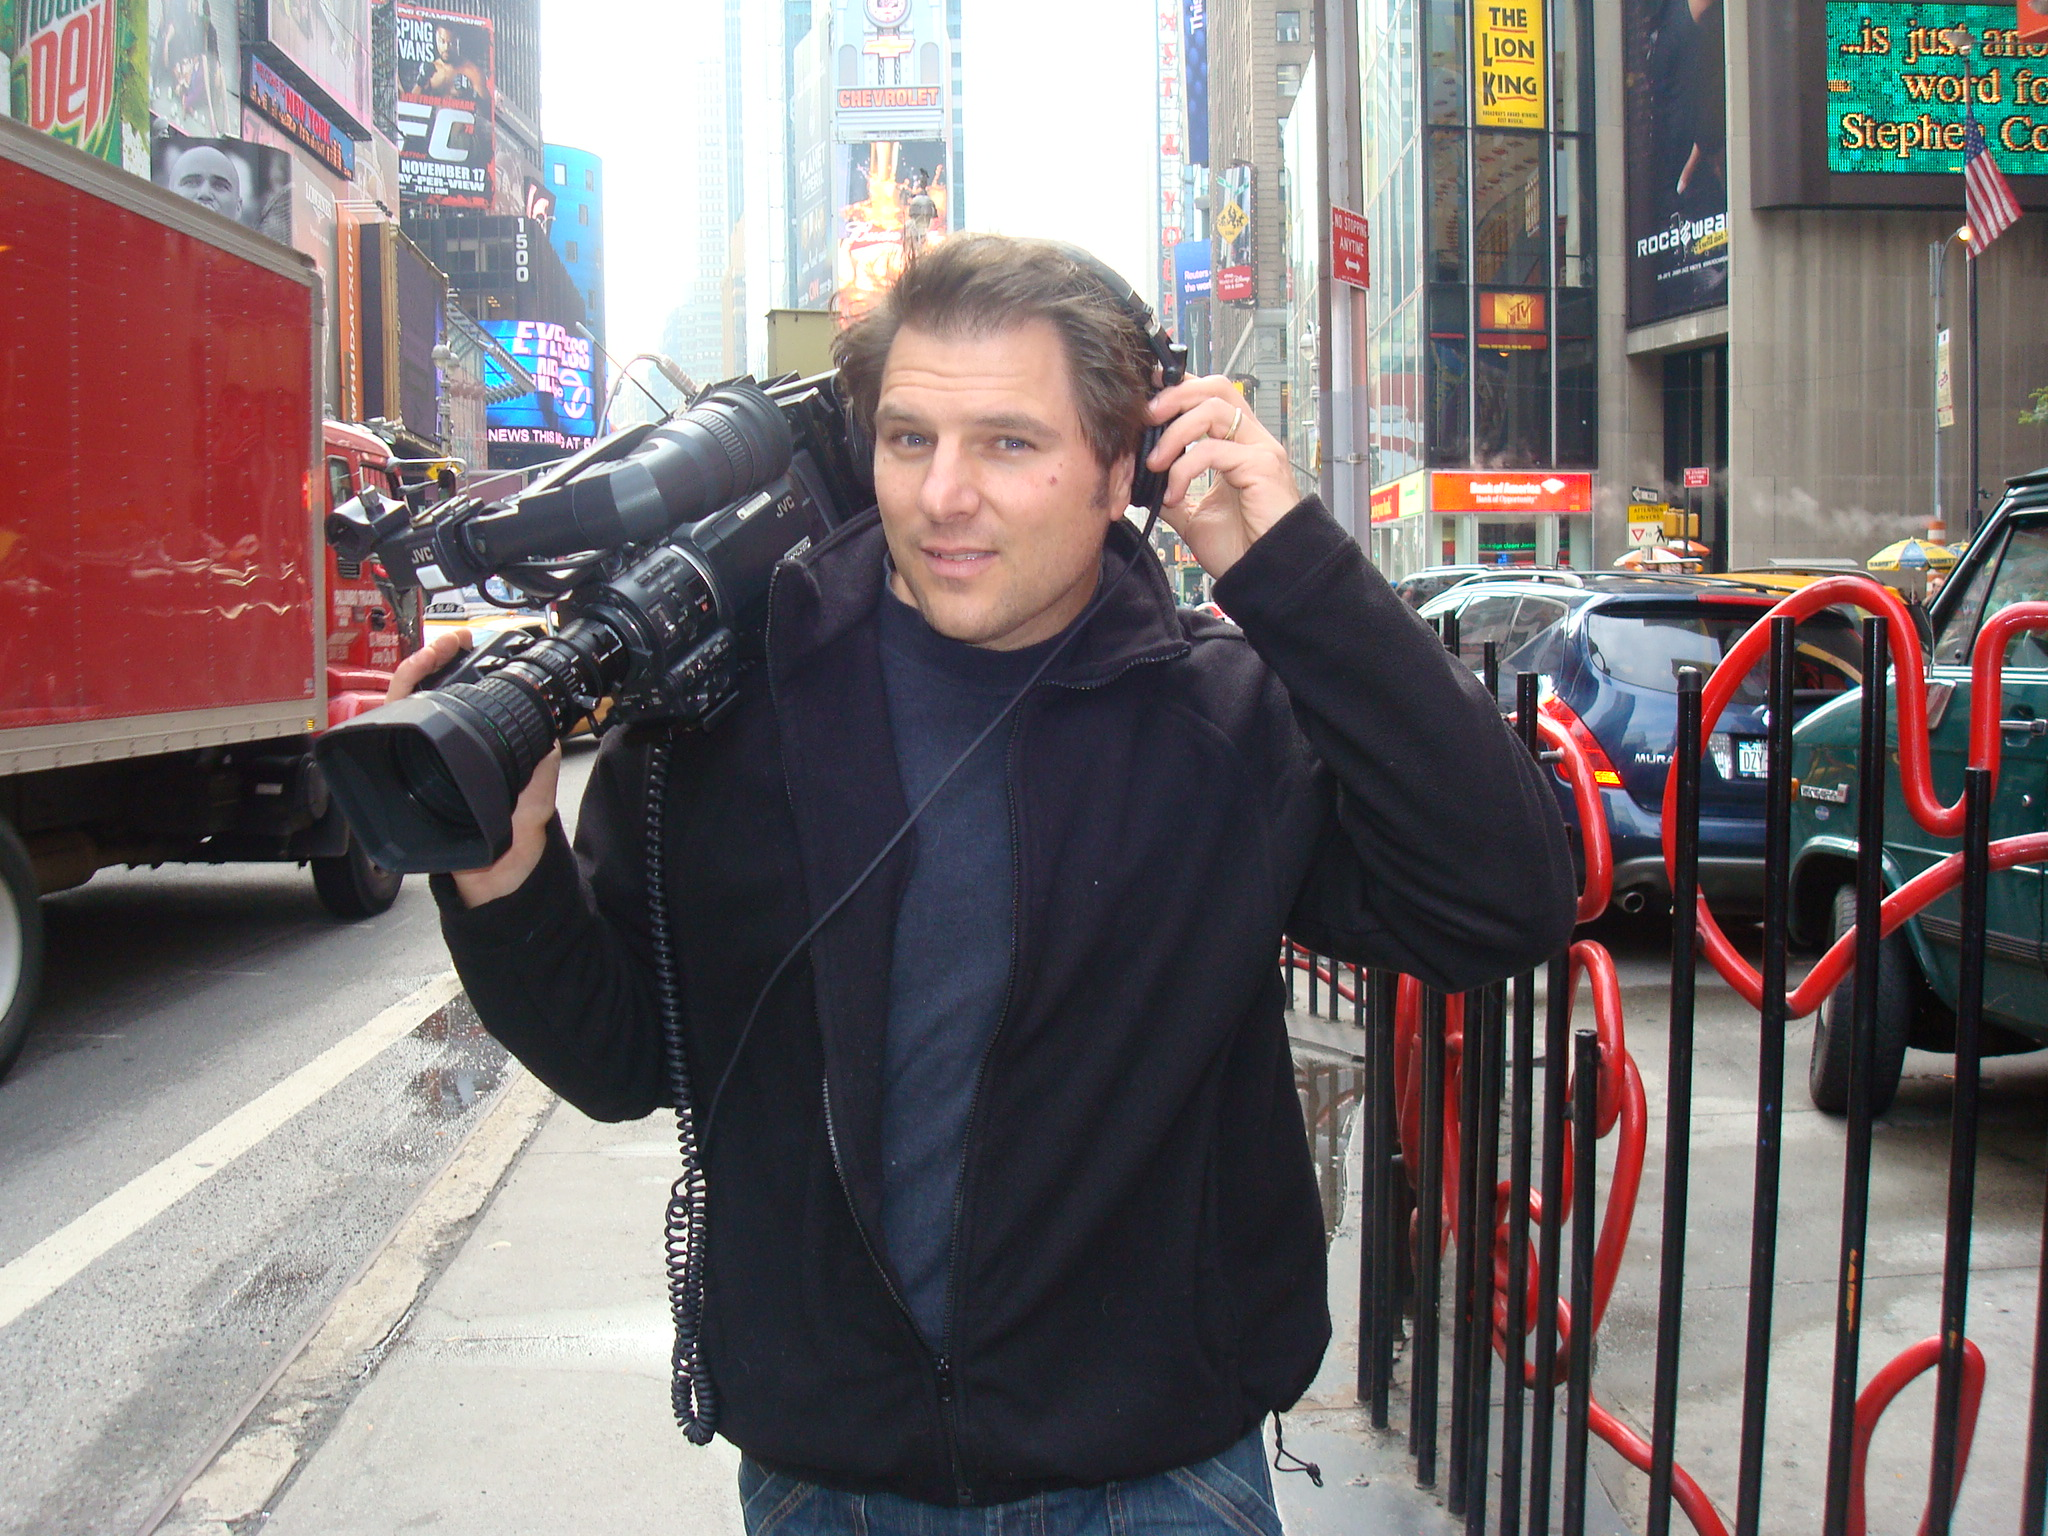 On location in Times Square